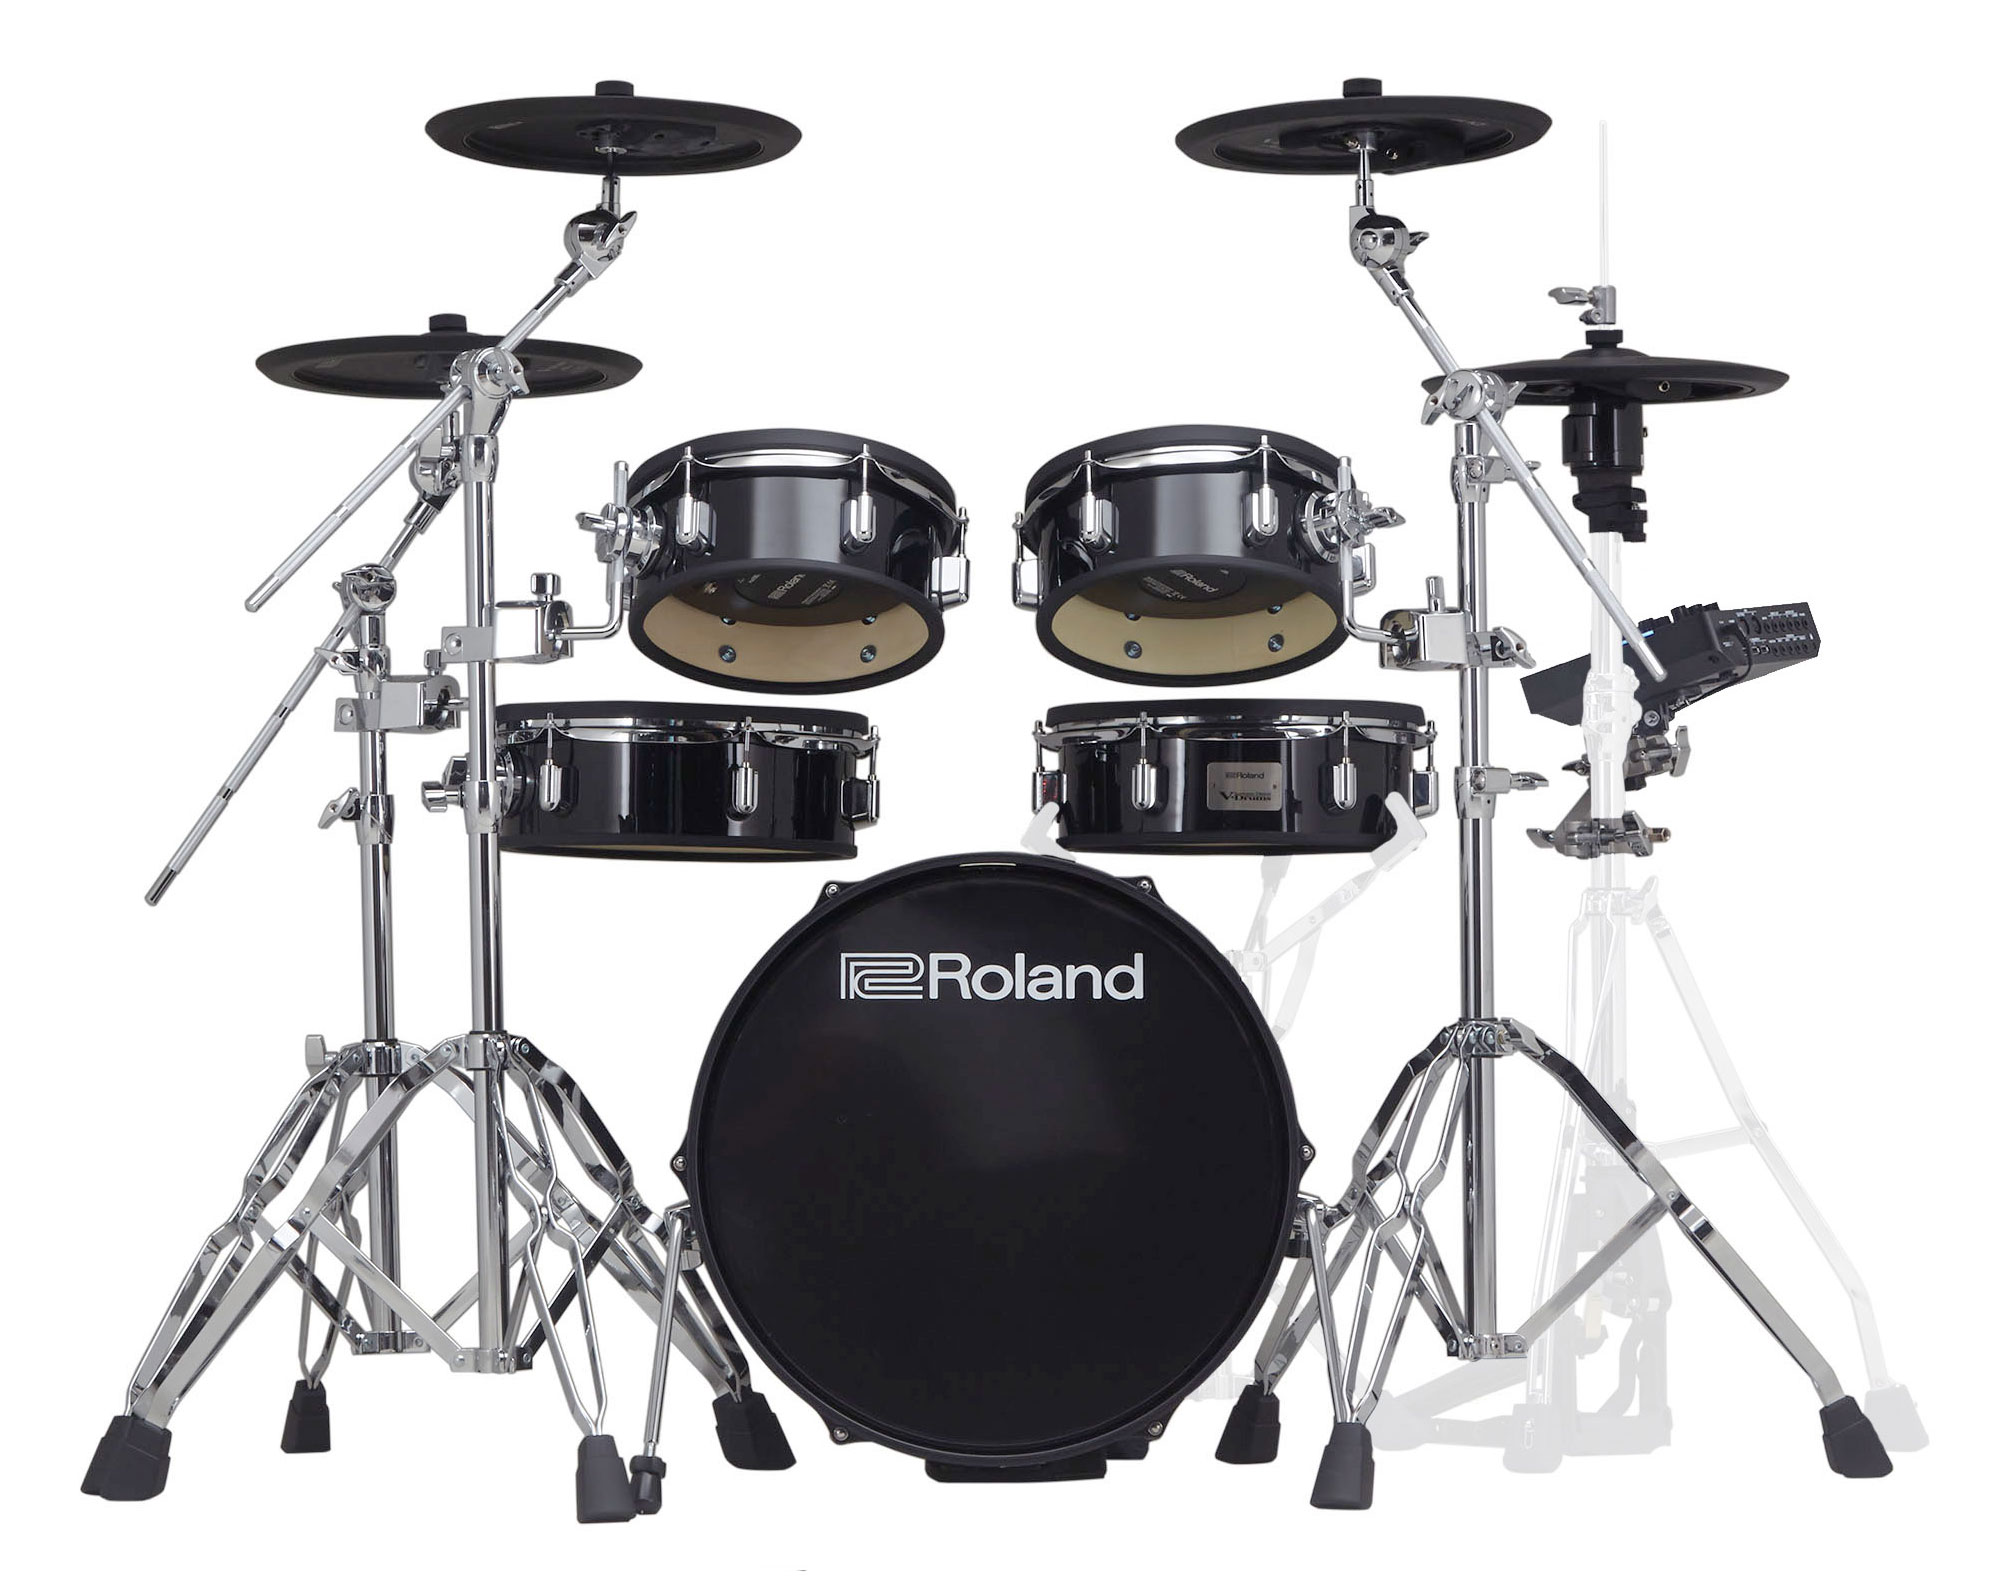 Roland VAD 3 Series   Products